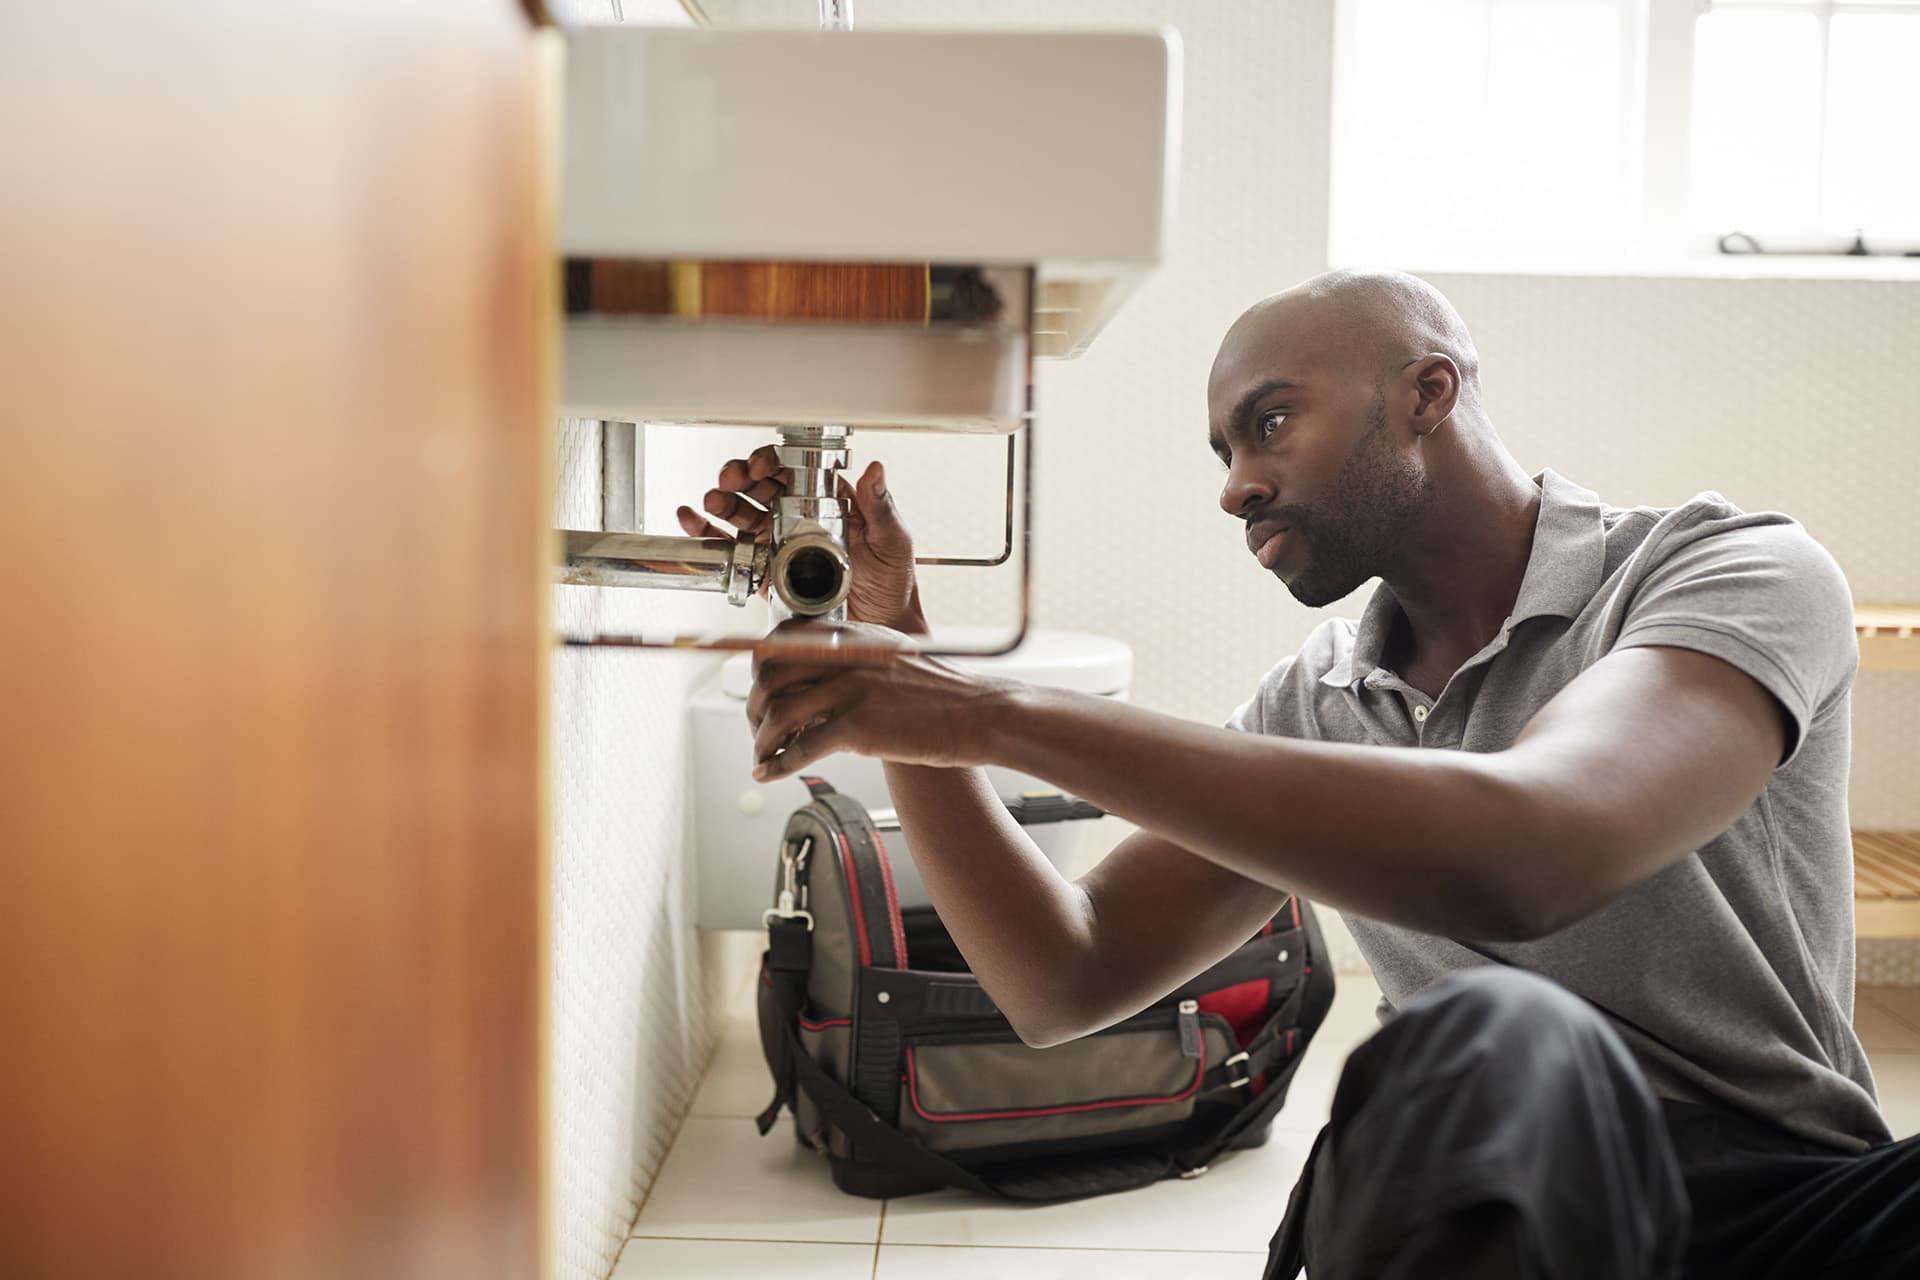 Man with plumber's insurance fixing pipes under a sink